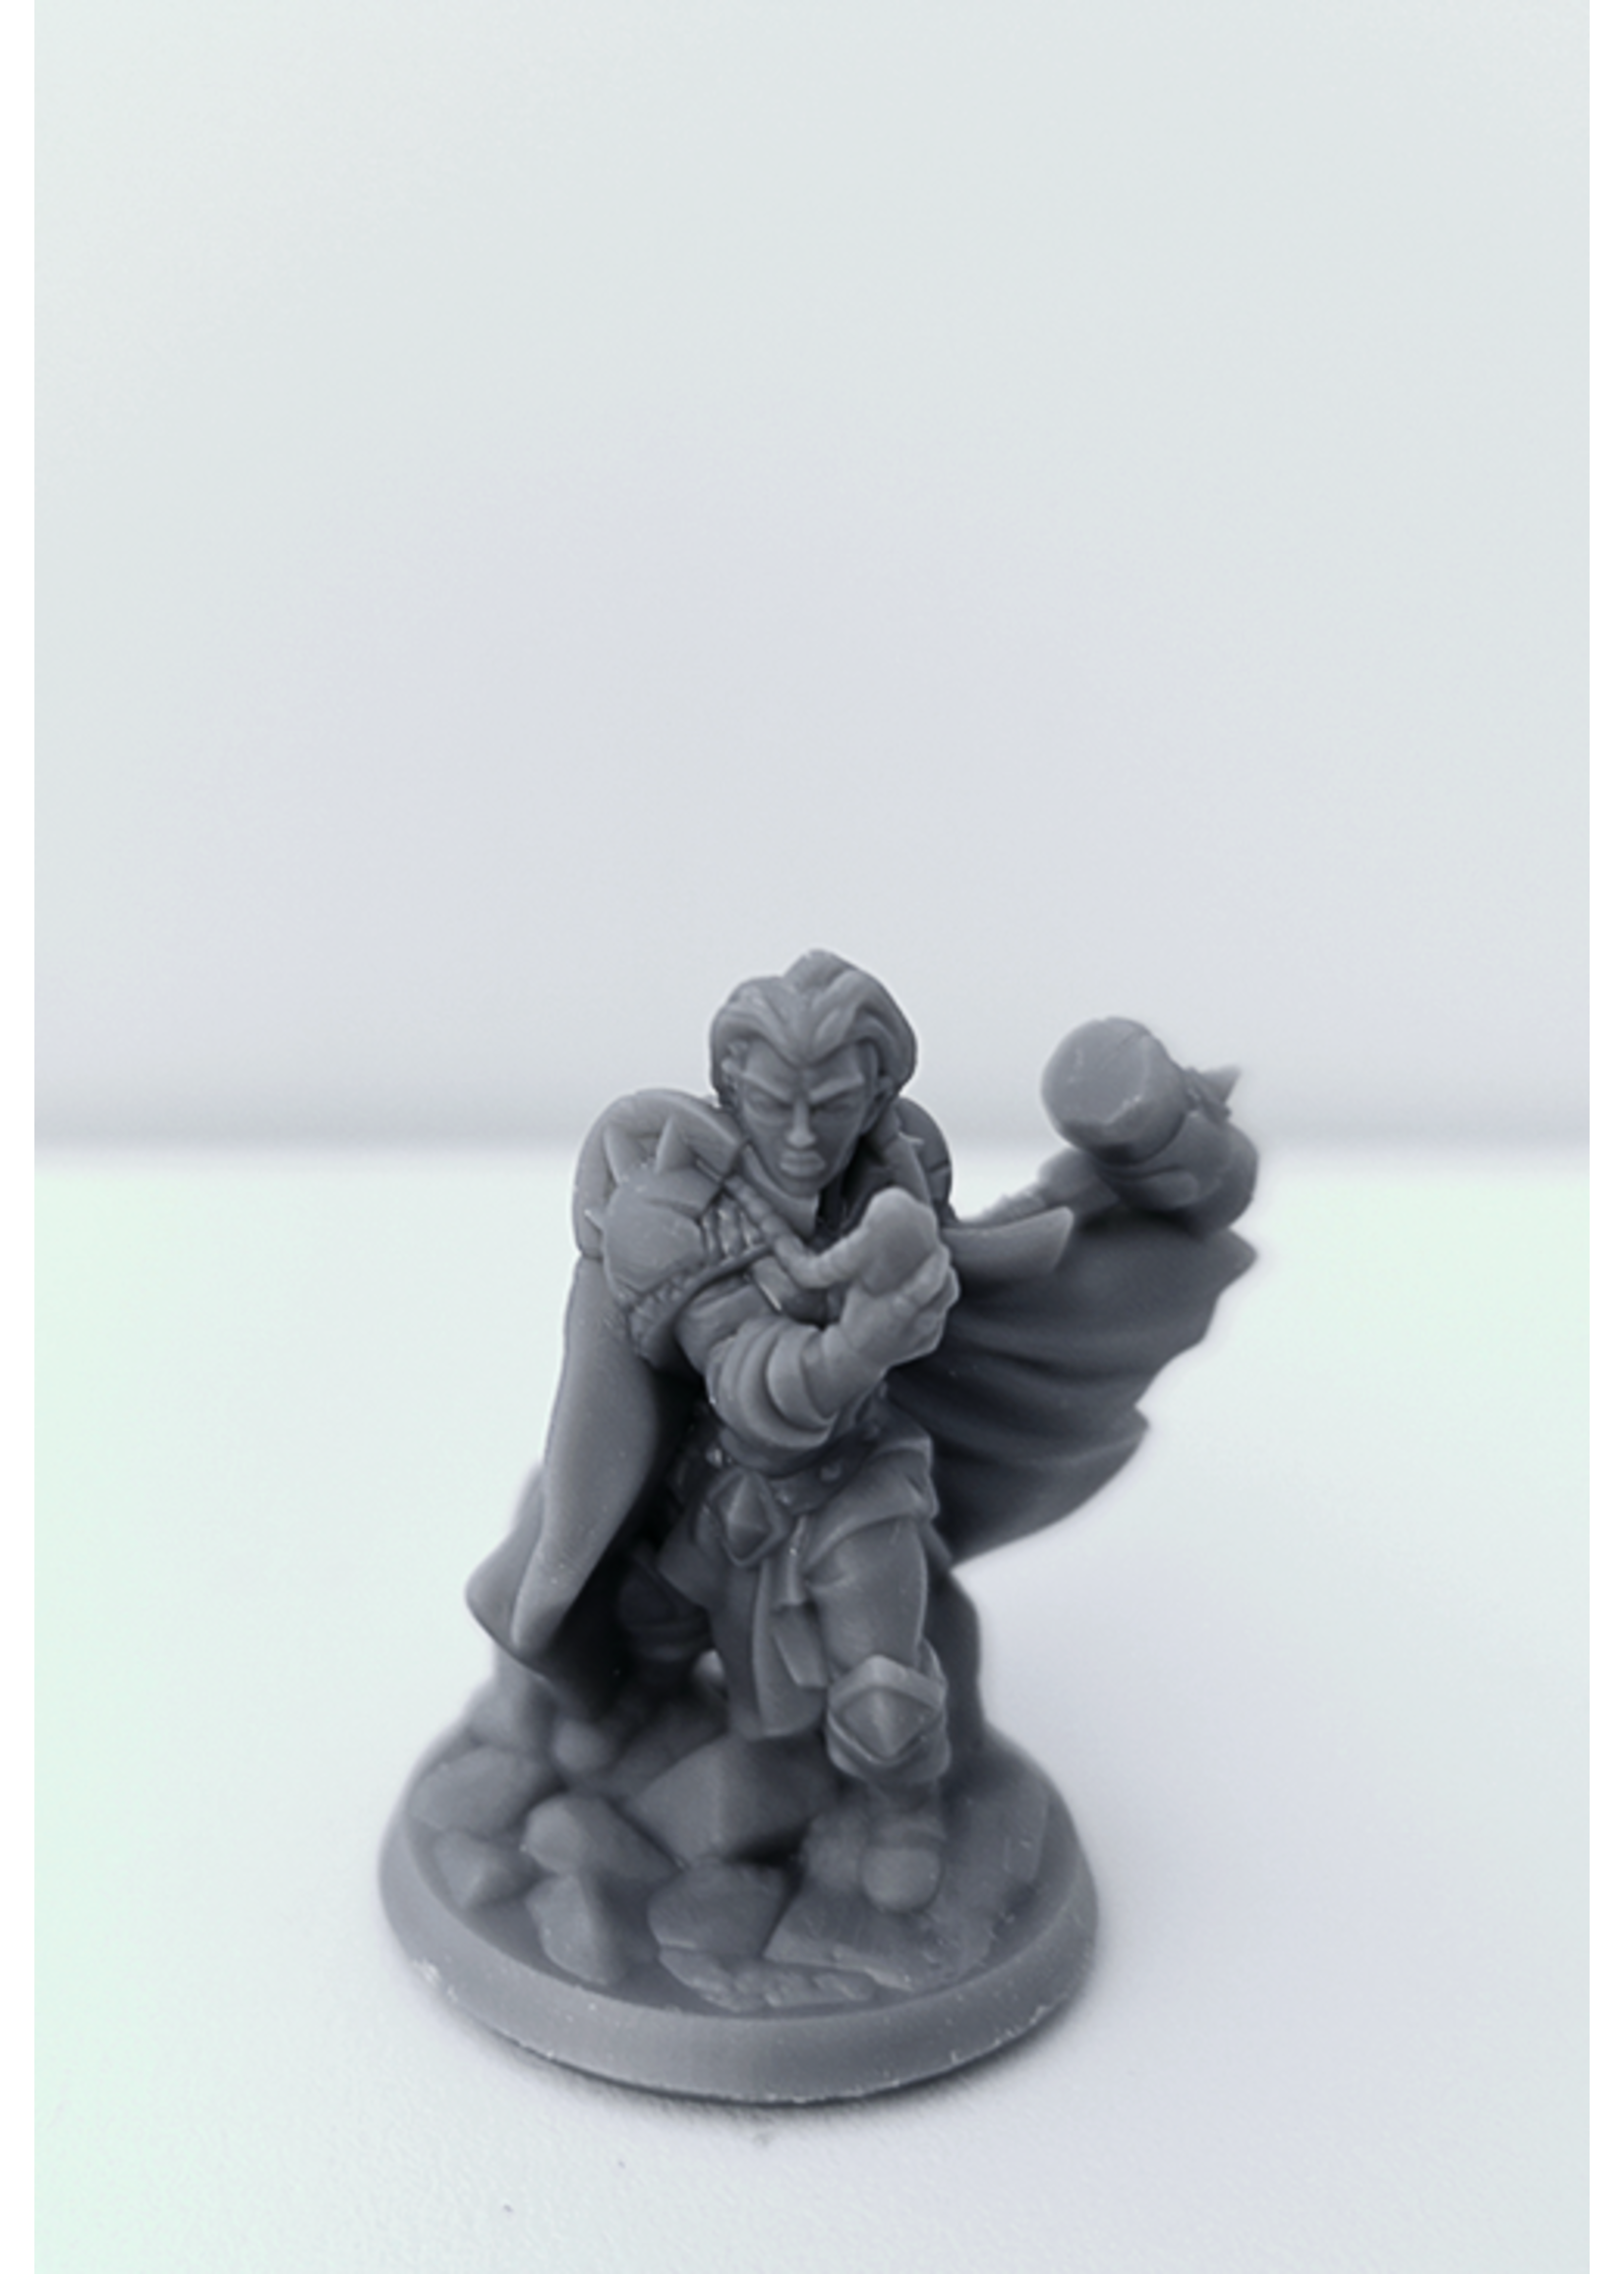 3D Printed Miniature - Cleric Female 01 - Dungeons & Dragons - Hero of the Realm KS